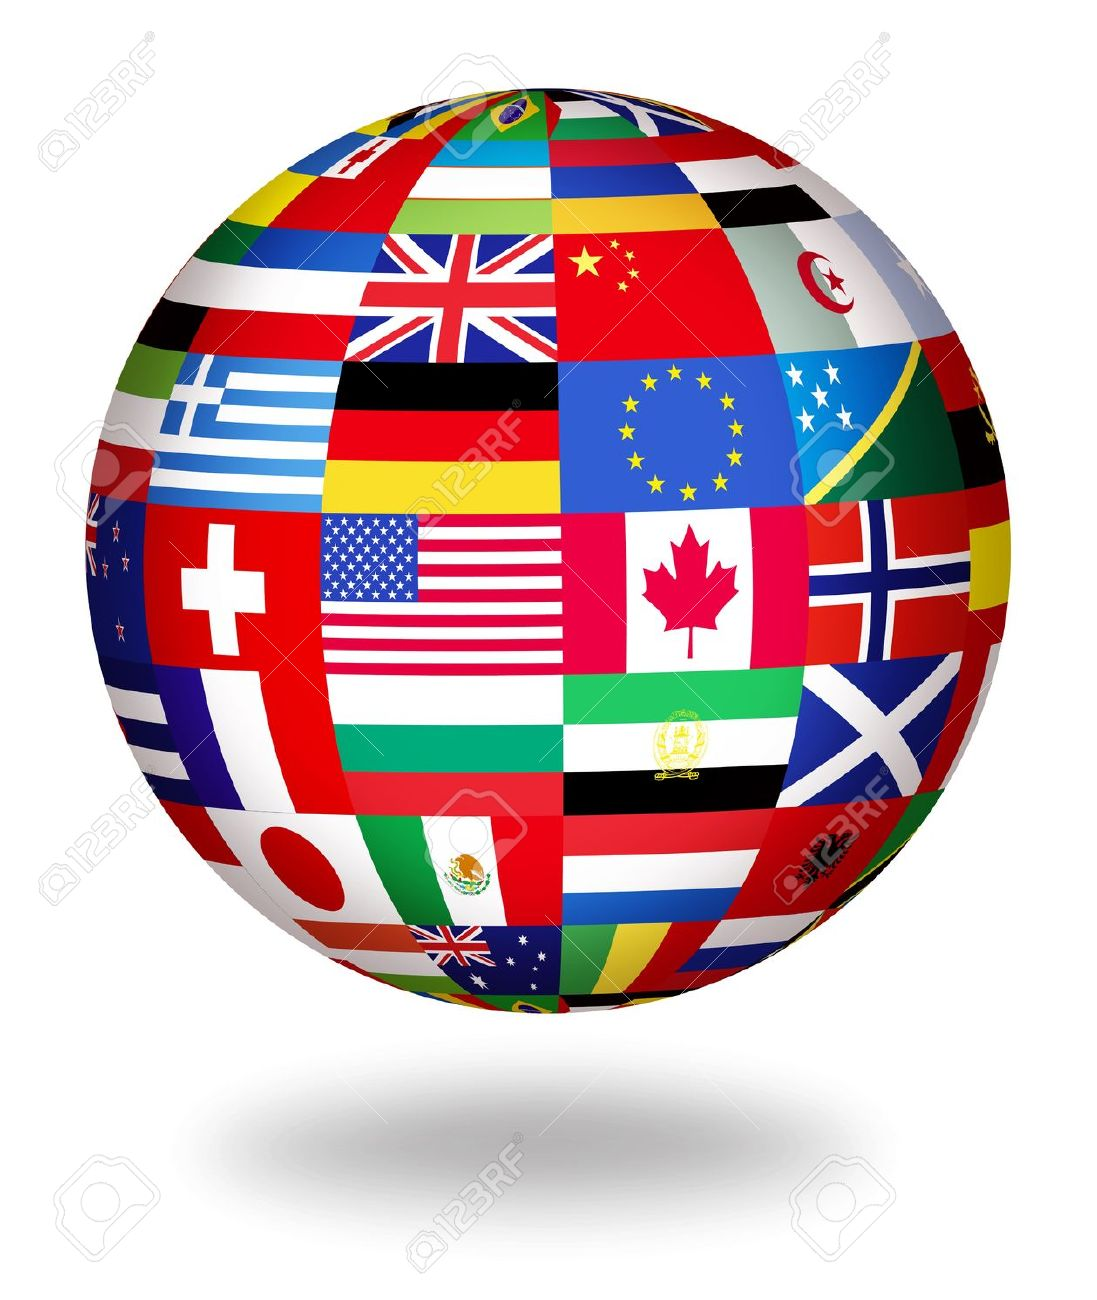 Image result for Images for globes with flags